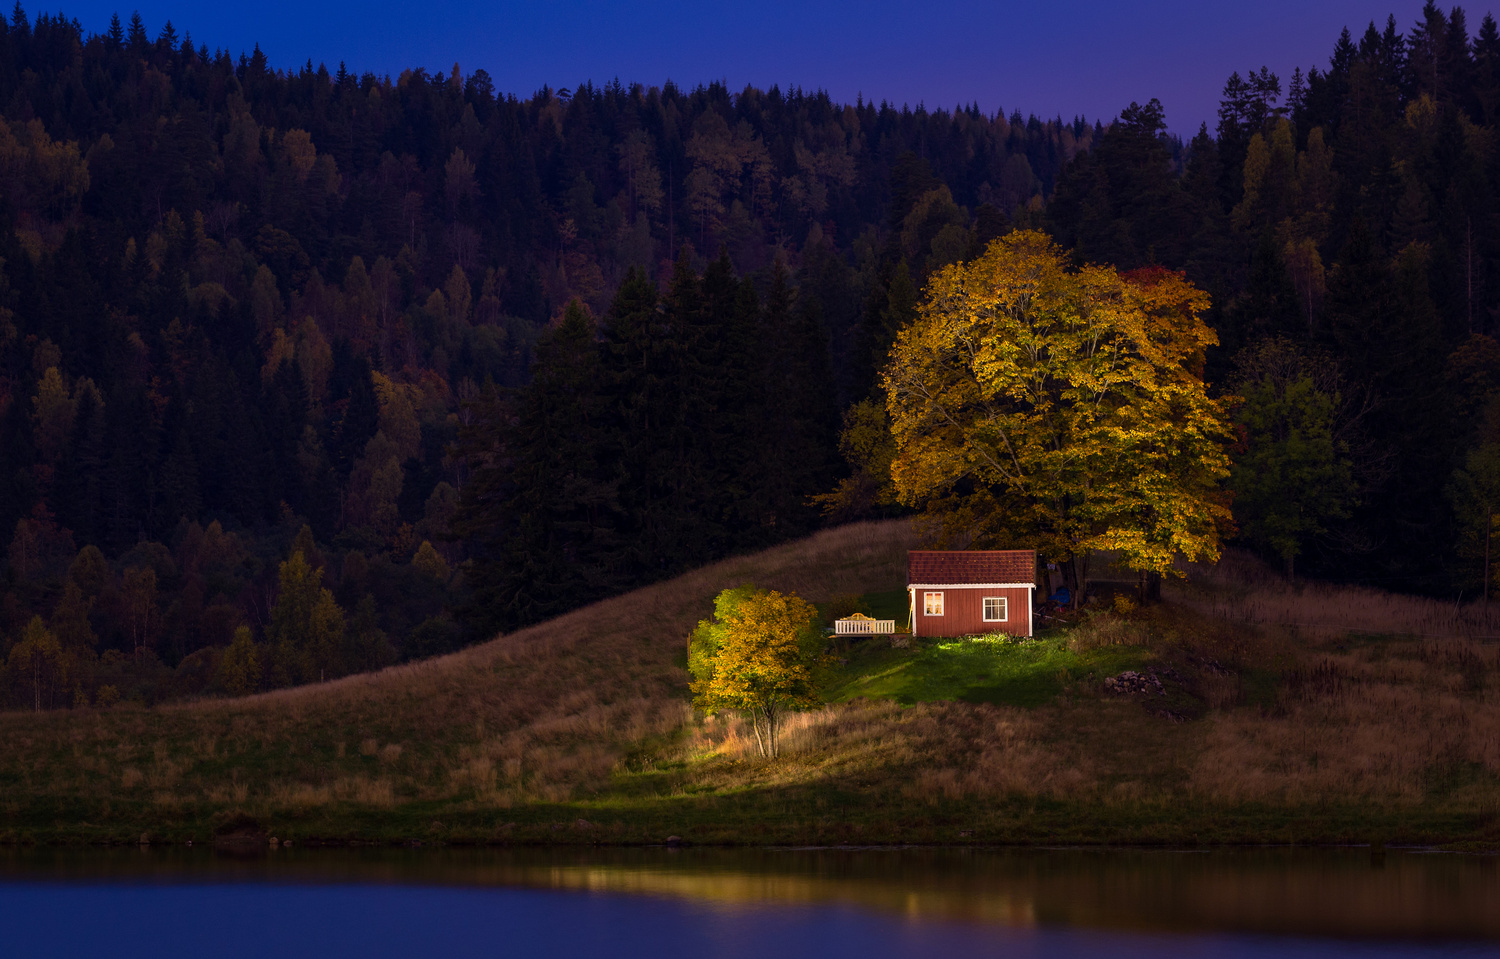 Painting with light by John Petter Hagen